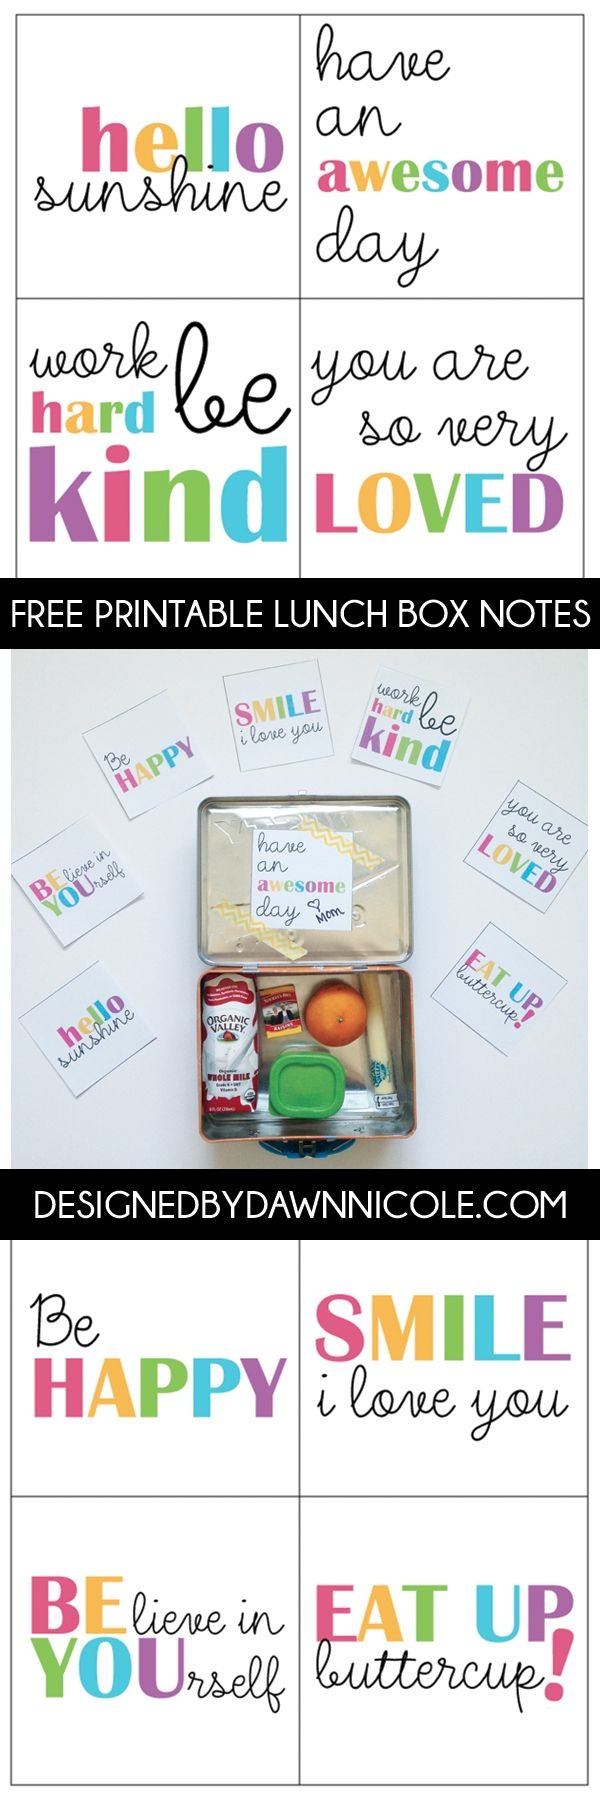 Free Printable Lunchbox Notes by Designed by Dawn Nicole